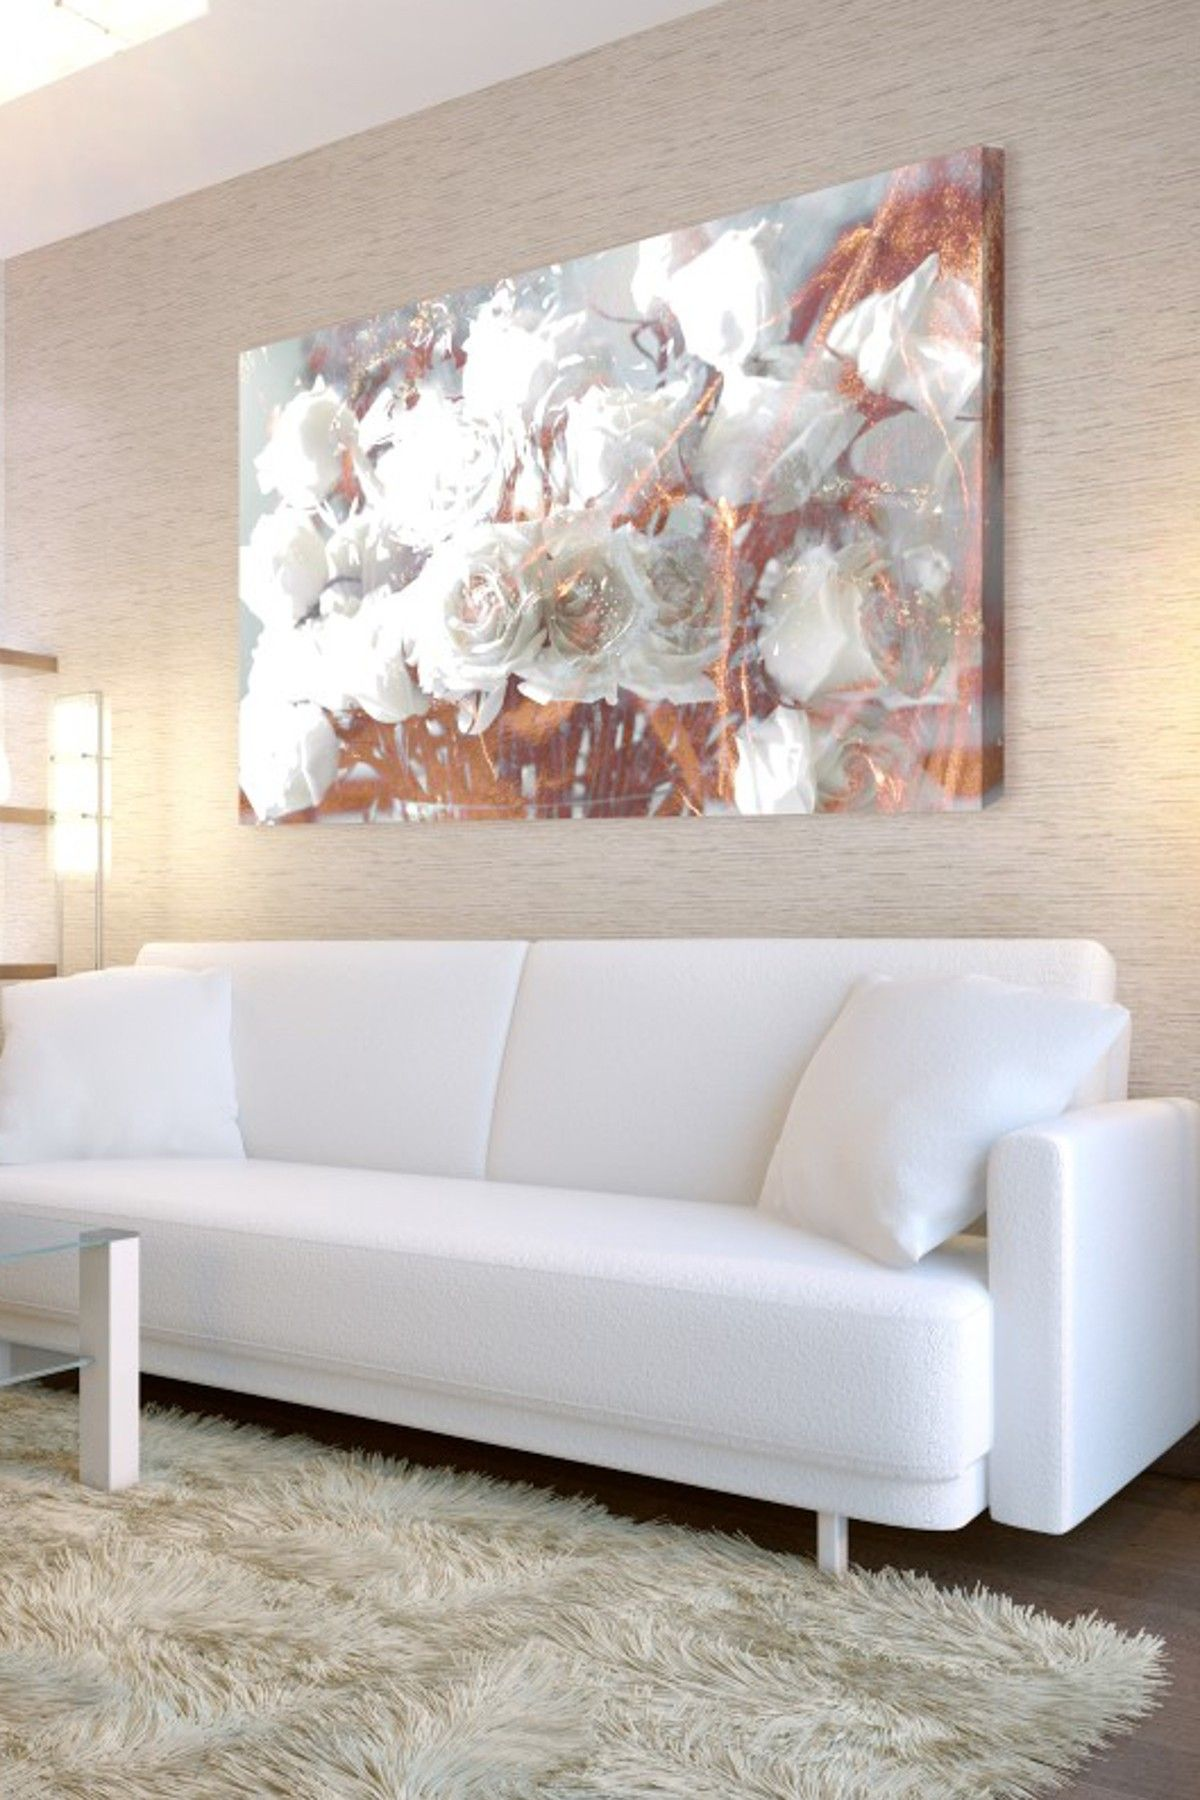 Metallic Decor Design Home Accents Rose Gold Metallic Floral Painting Home Inspiration